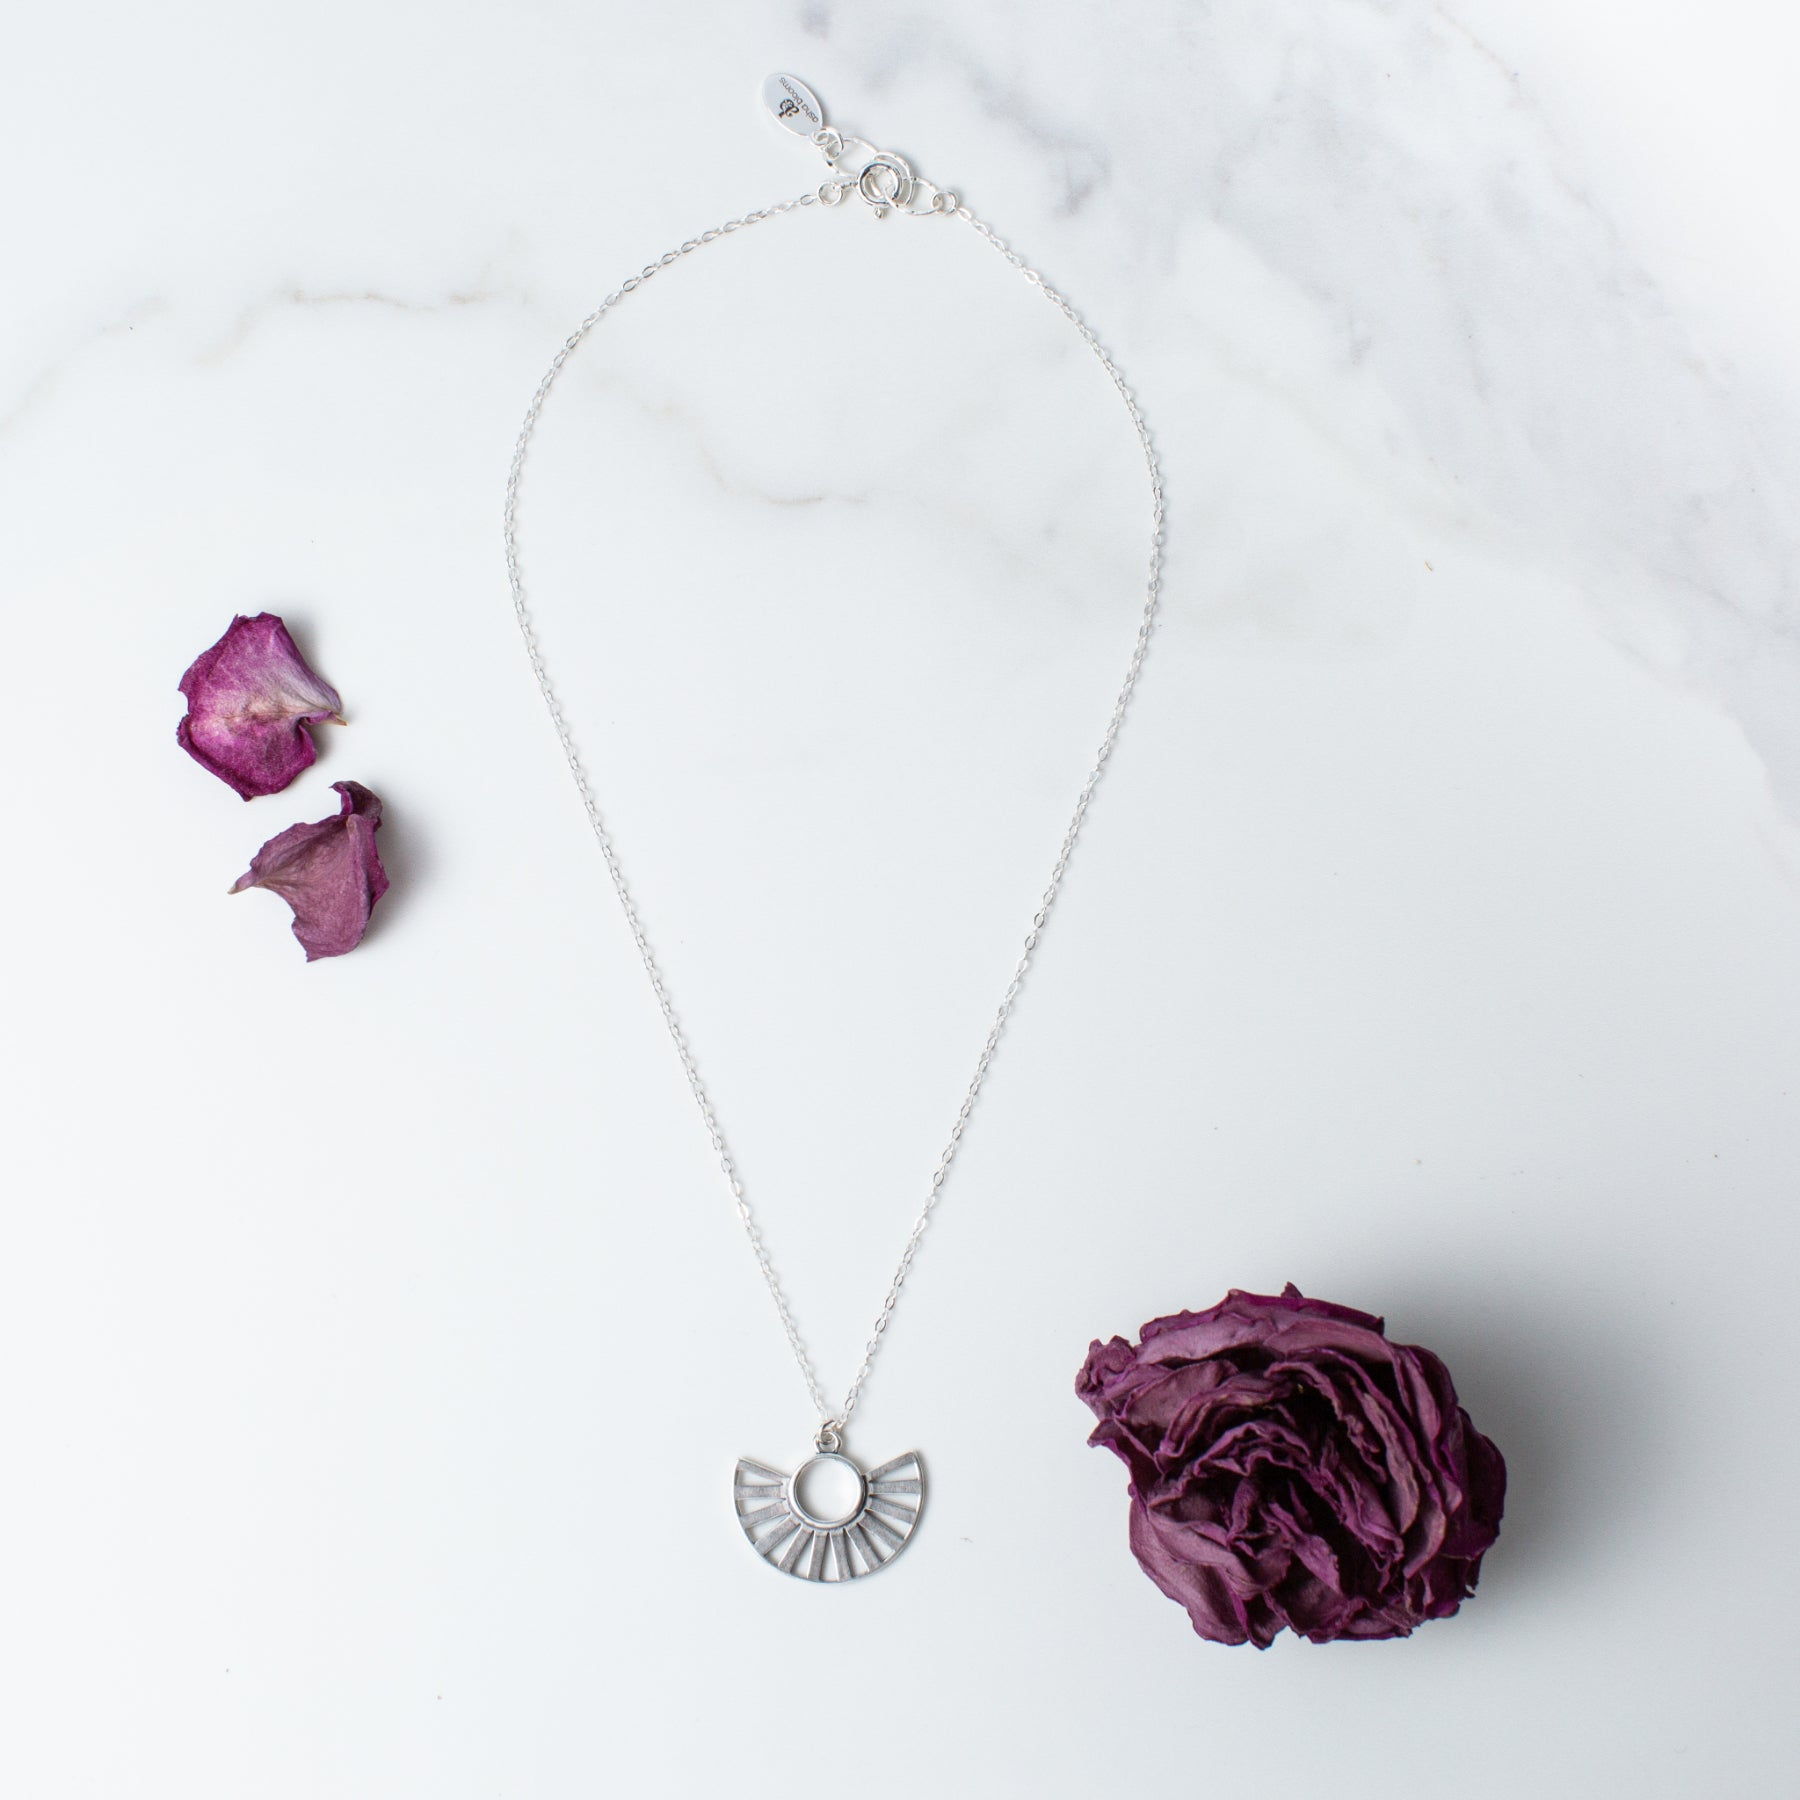 Silver Sun Pendant Necklace 'You Are Becoming' Flat Lay with Purple Flower Petals Photo by Asha Blooms